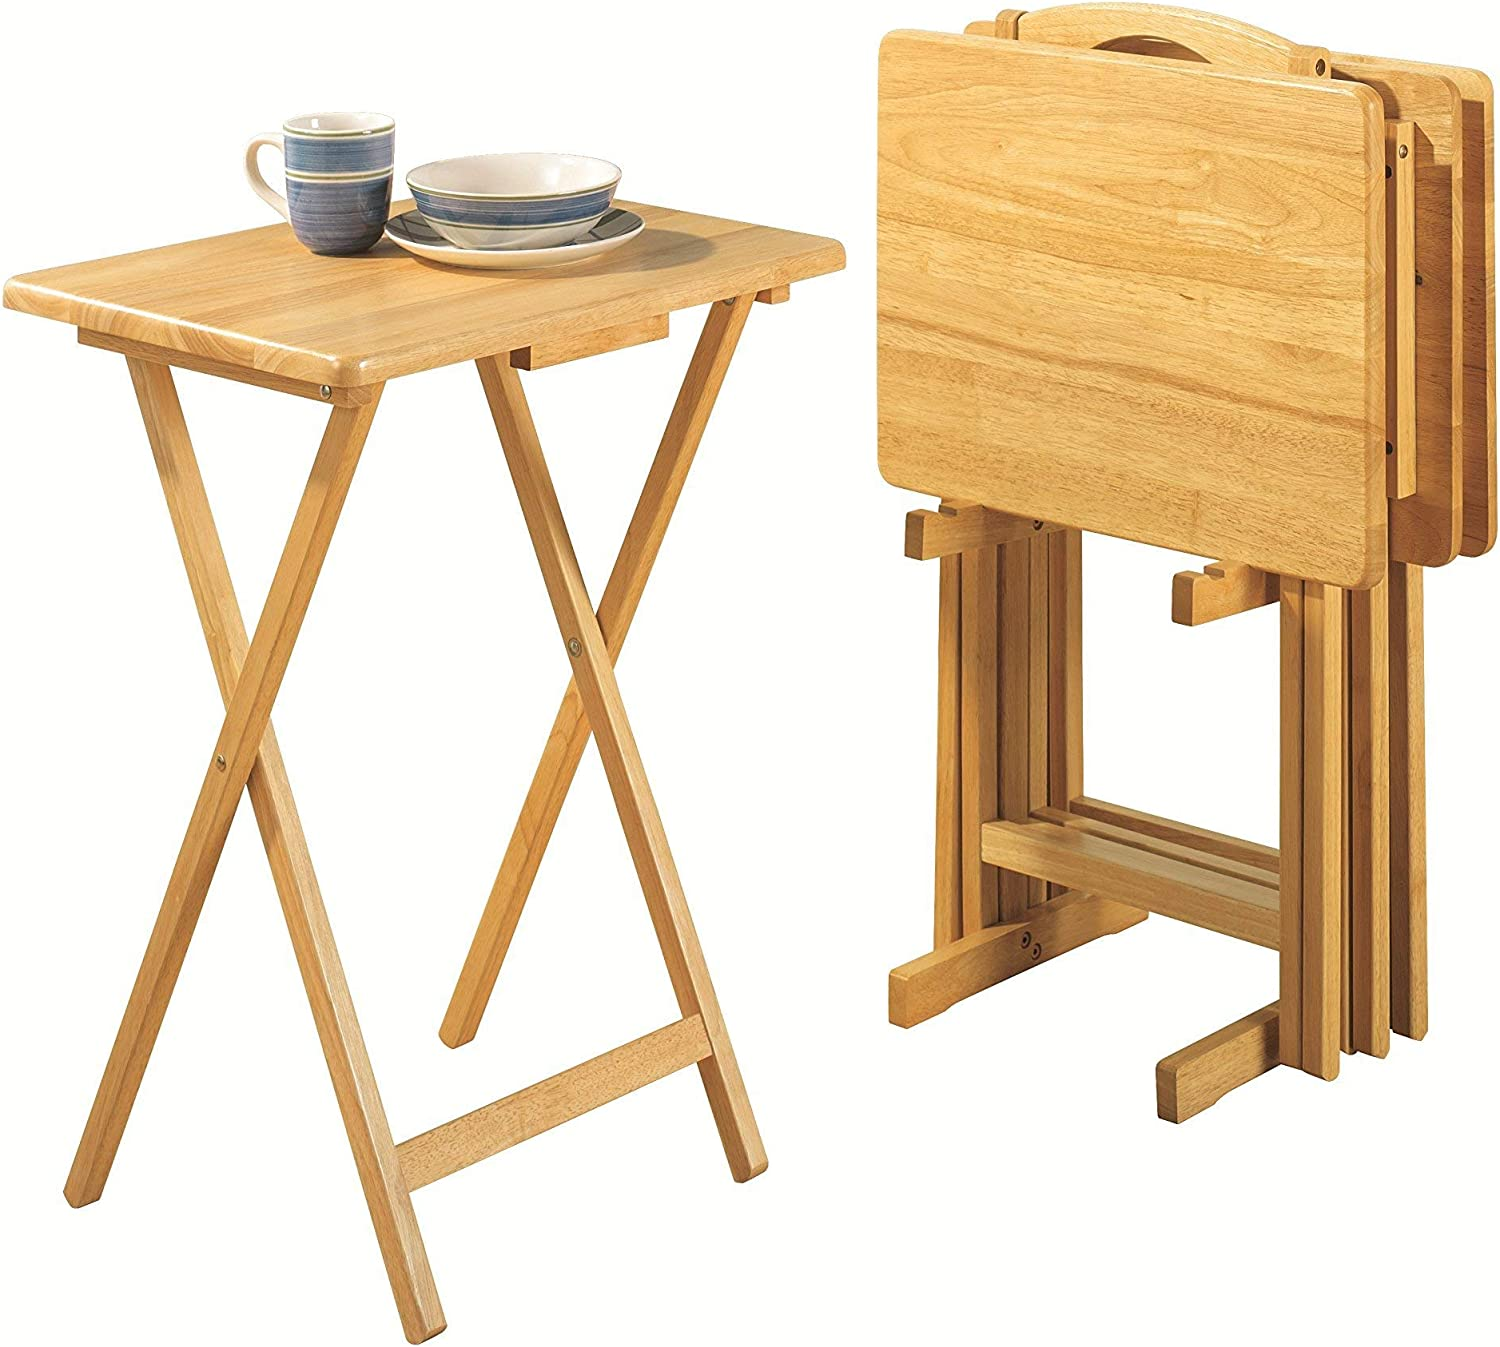 - Amazon.com: PJ Wood Folding TV Tray Table & Snack Table With